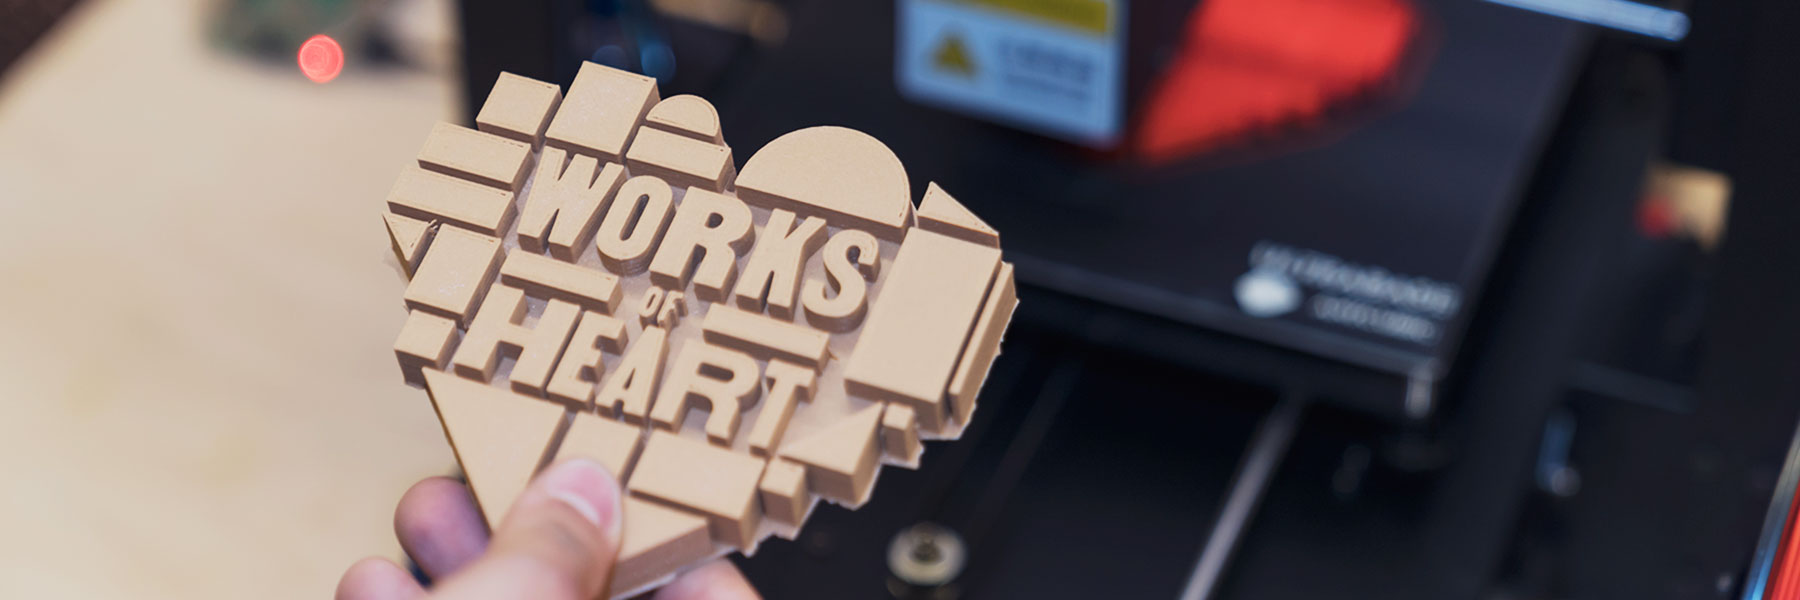 3-D printed Works of Heart logo